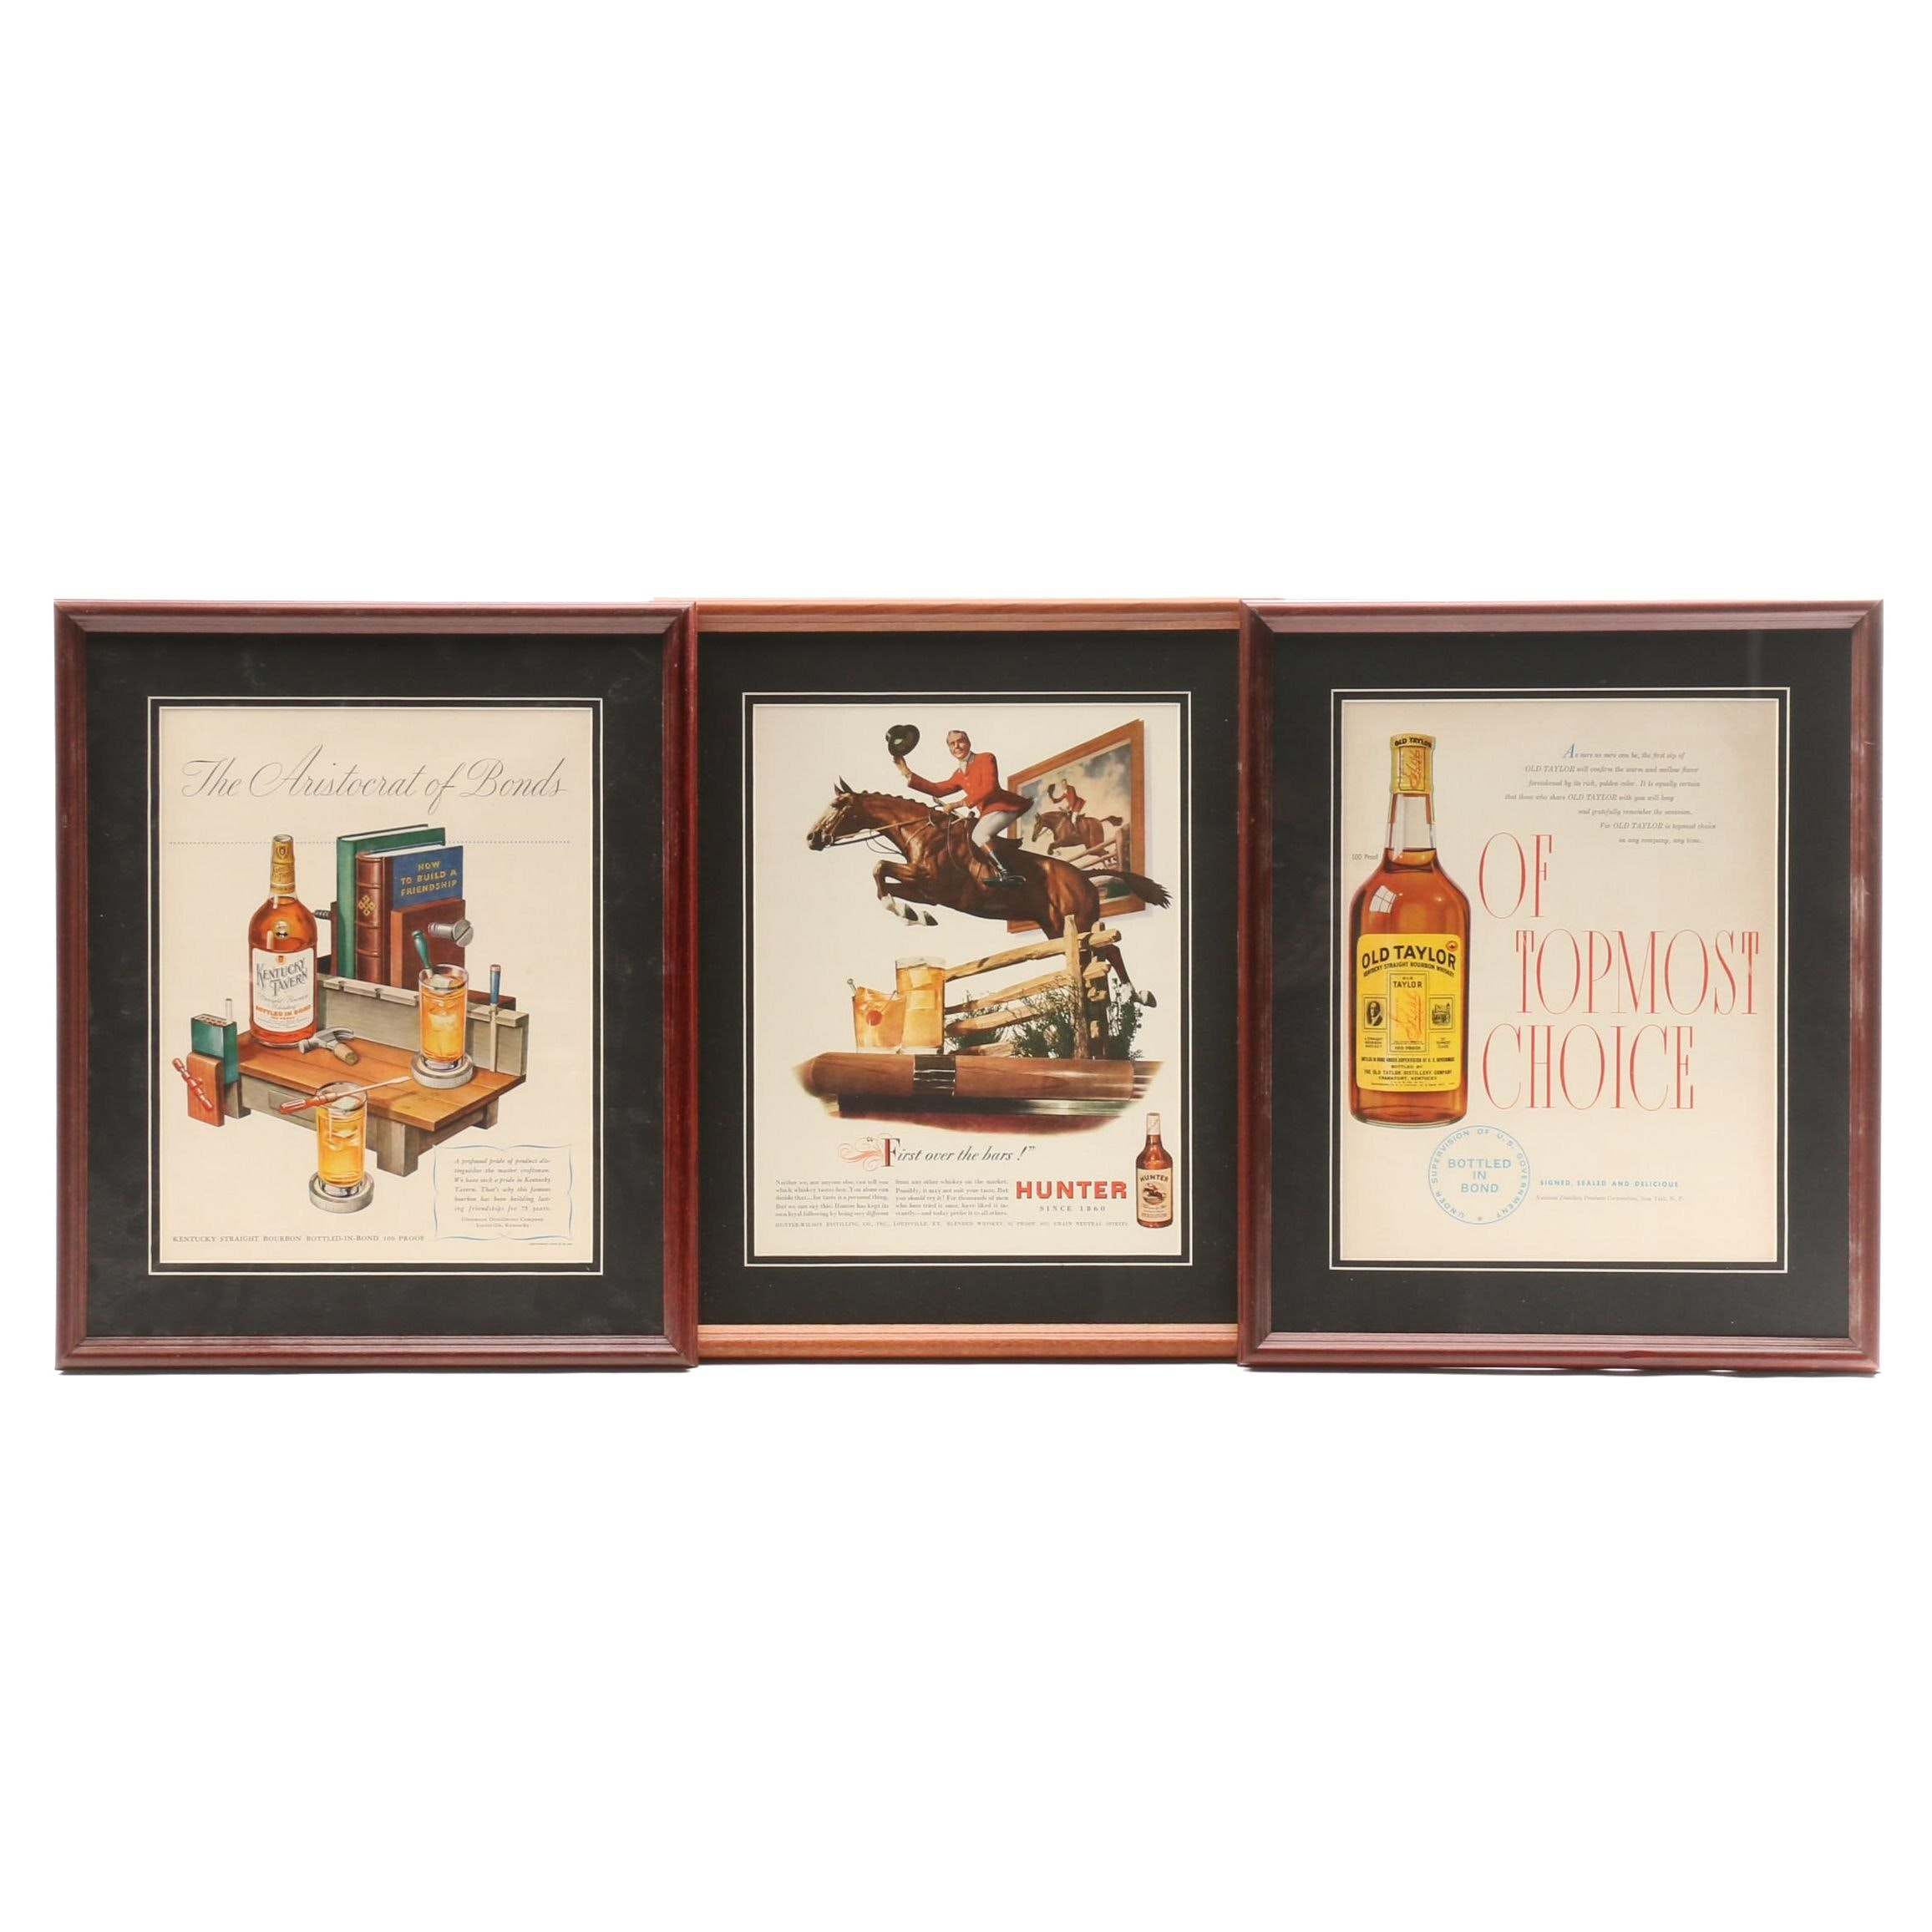 Vintage Advertisements for Old Taylor, Kentucky Tavern and Hunter Bourbon